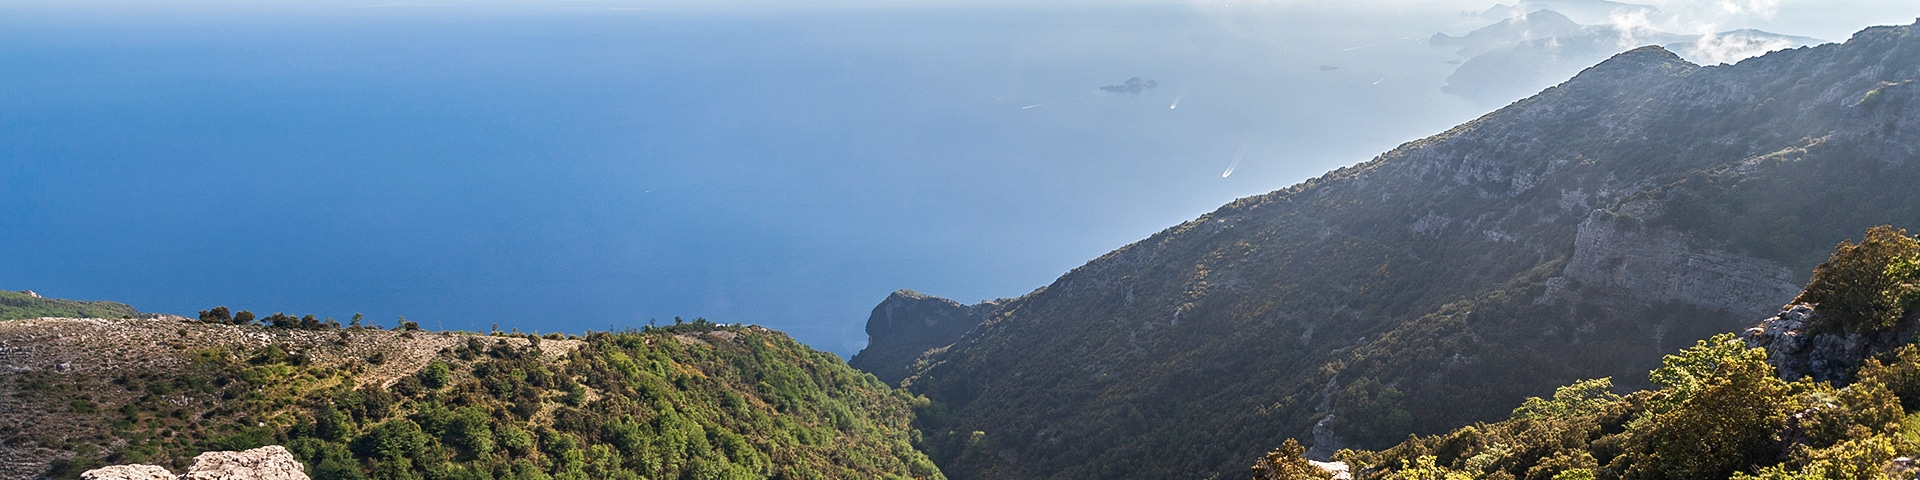 Panorama of the Monte Camino hike in Amalfi Coast, Italy